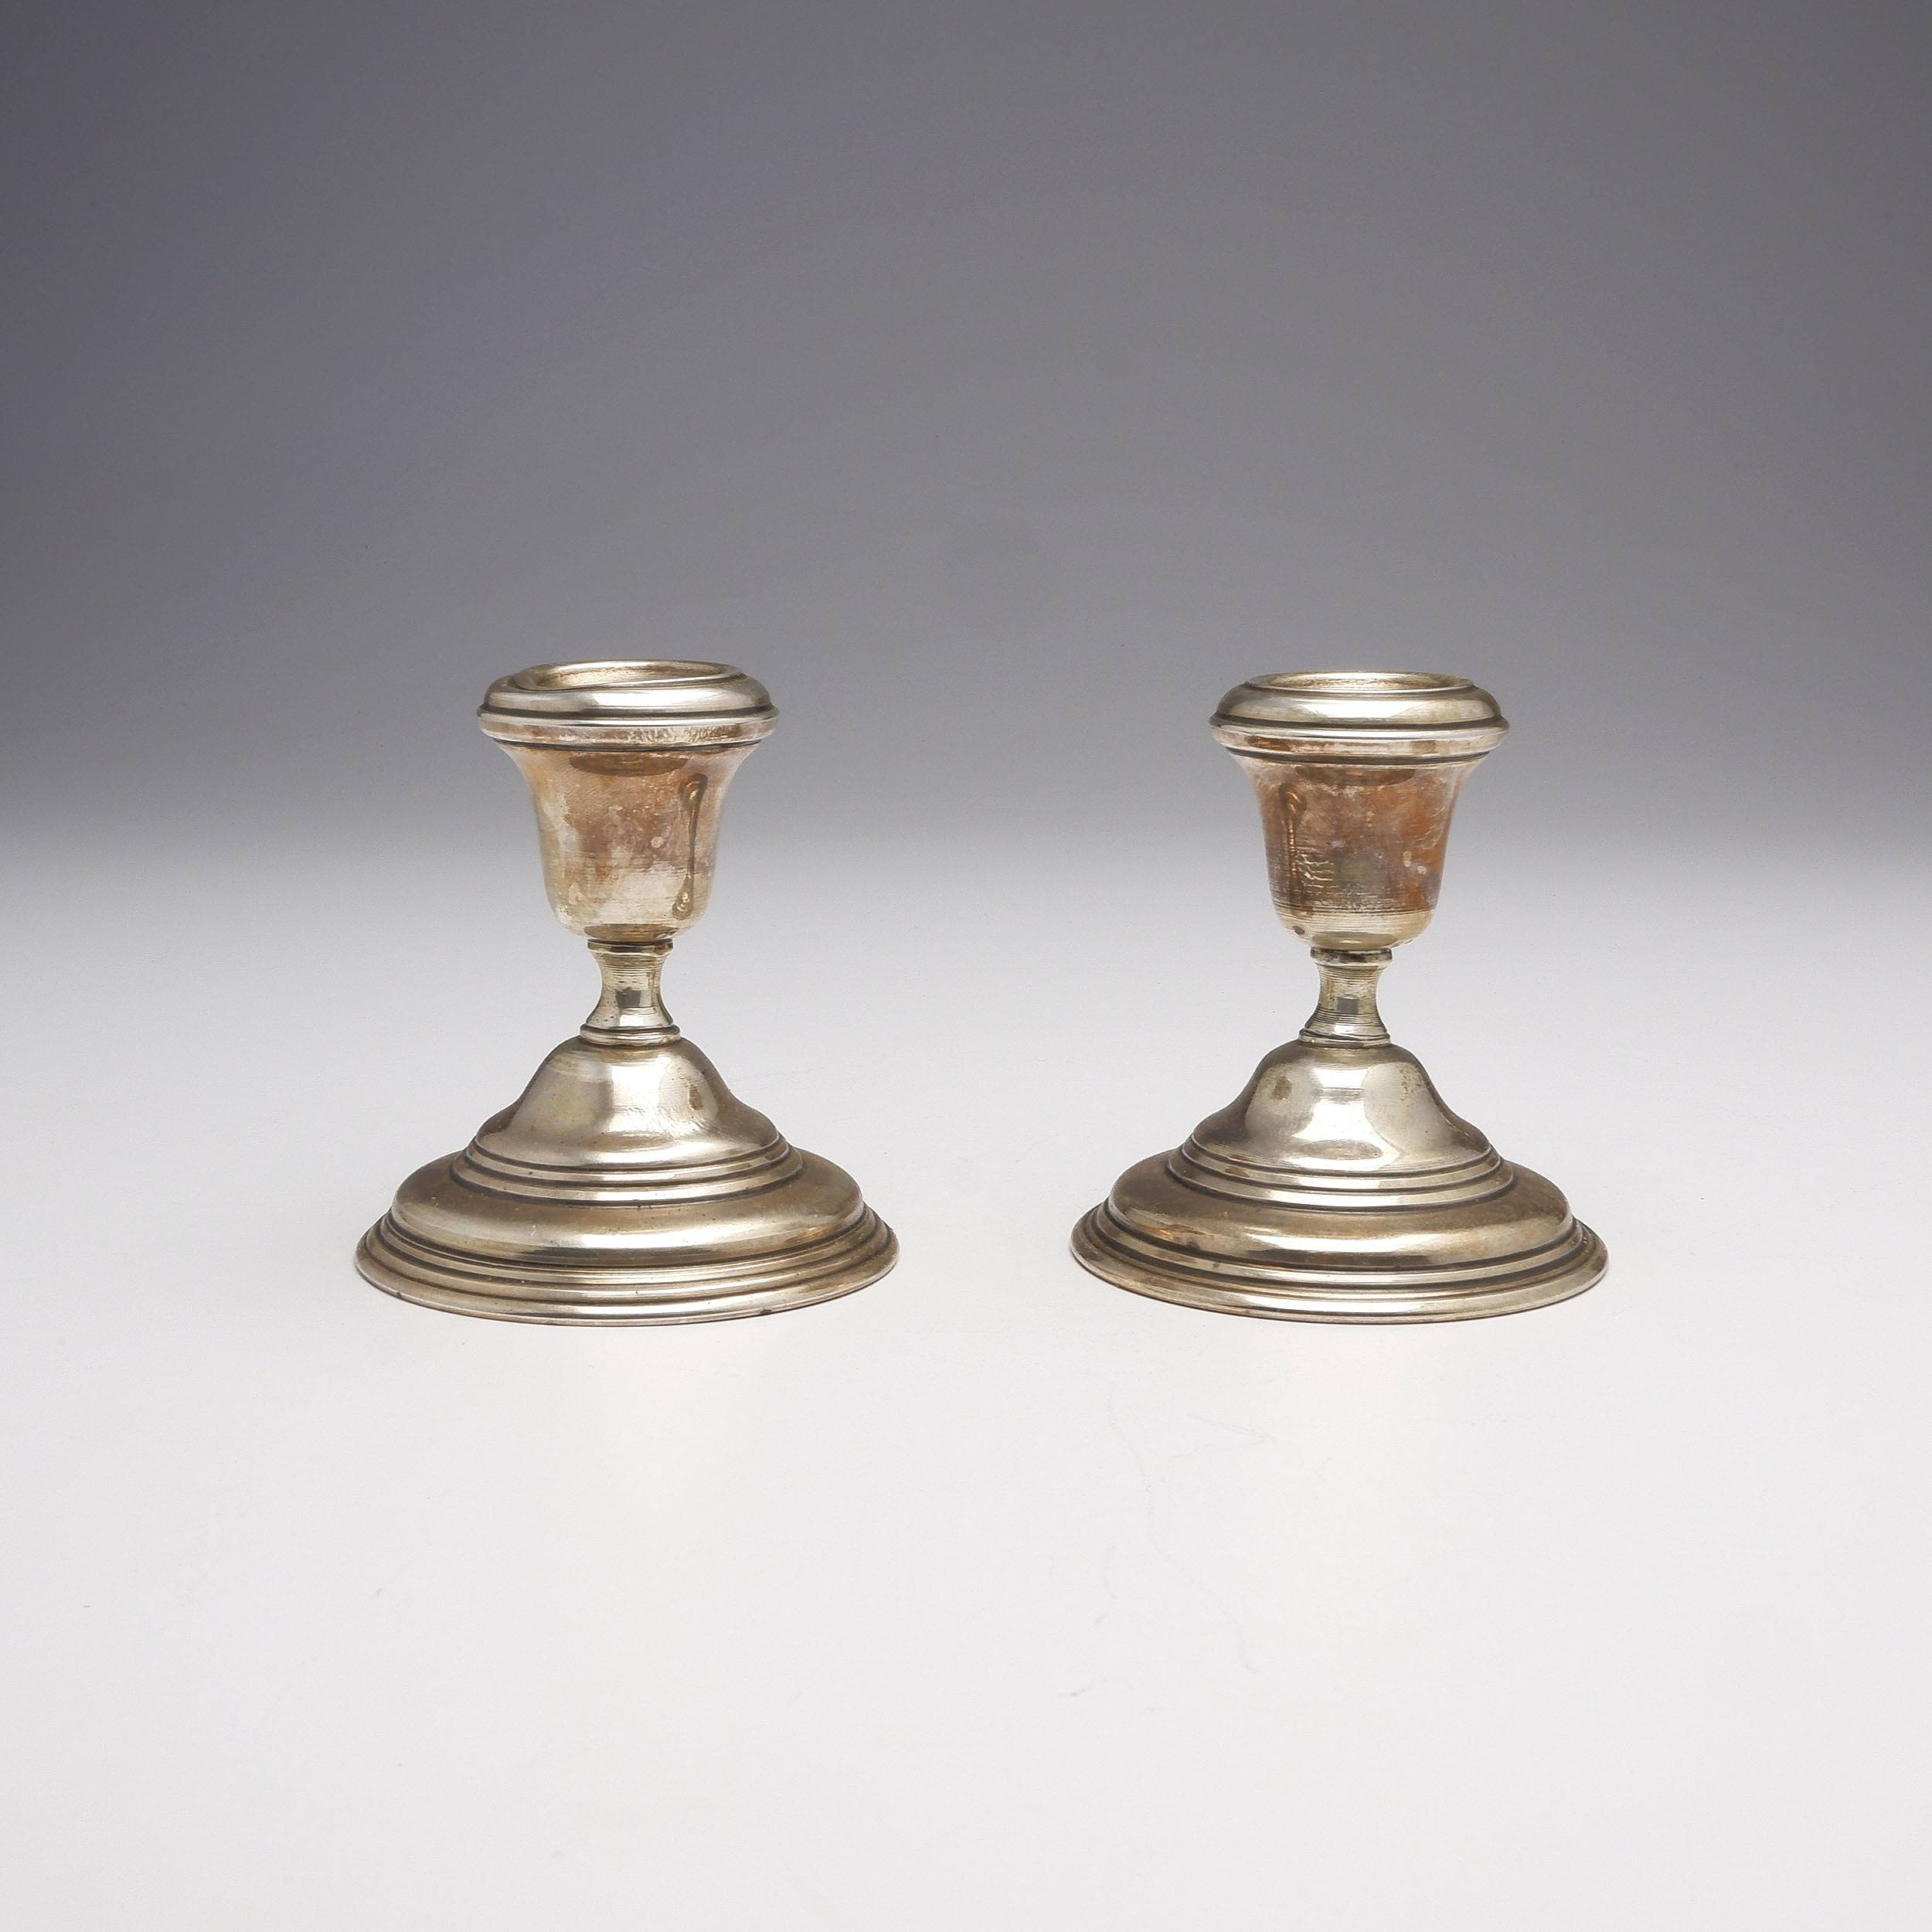 'Pair of Persian 900 Silver Candlesticks, 215g'